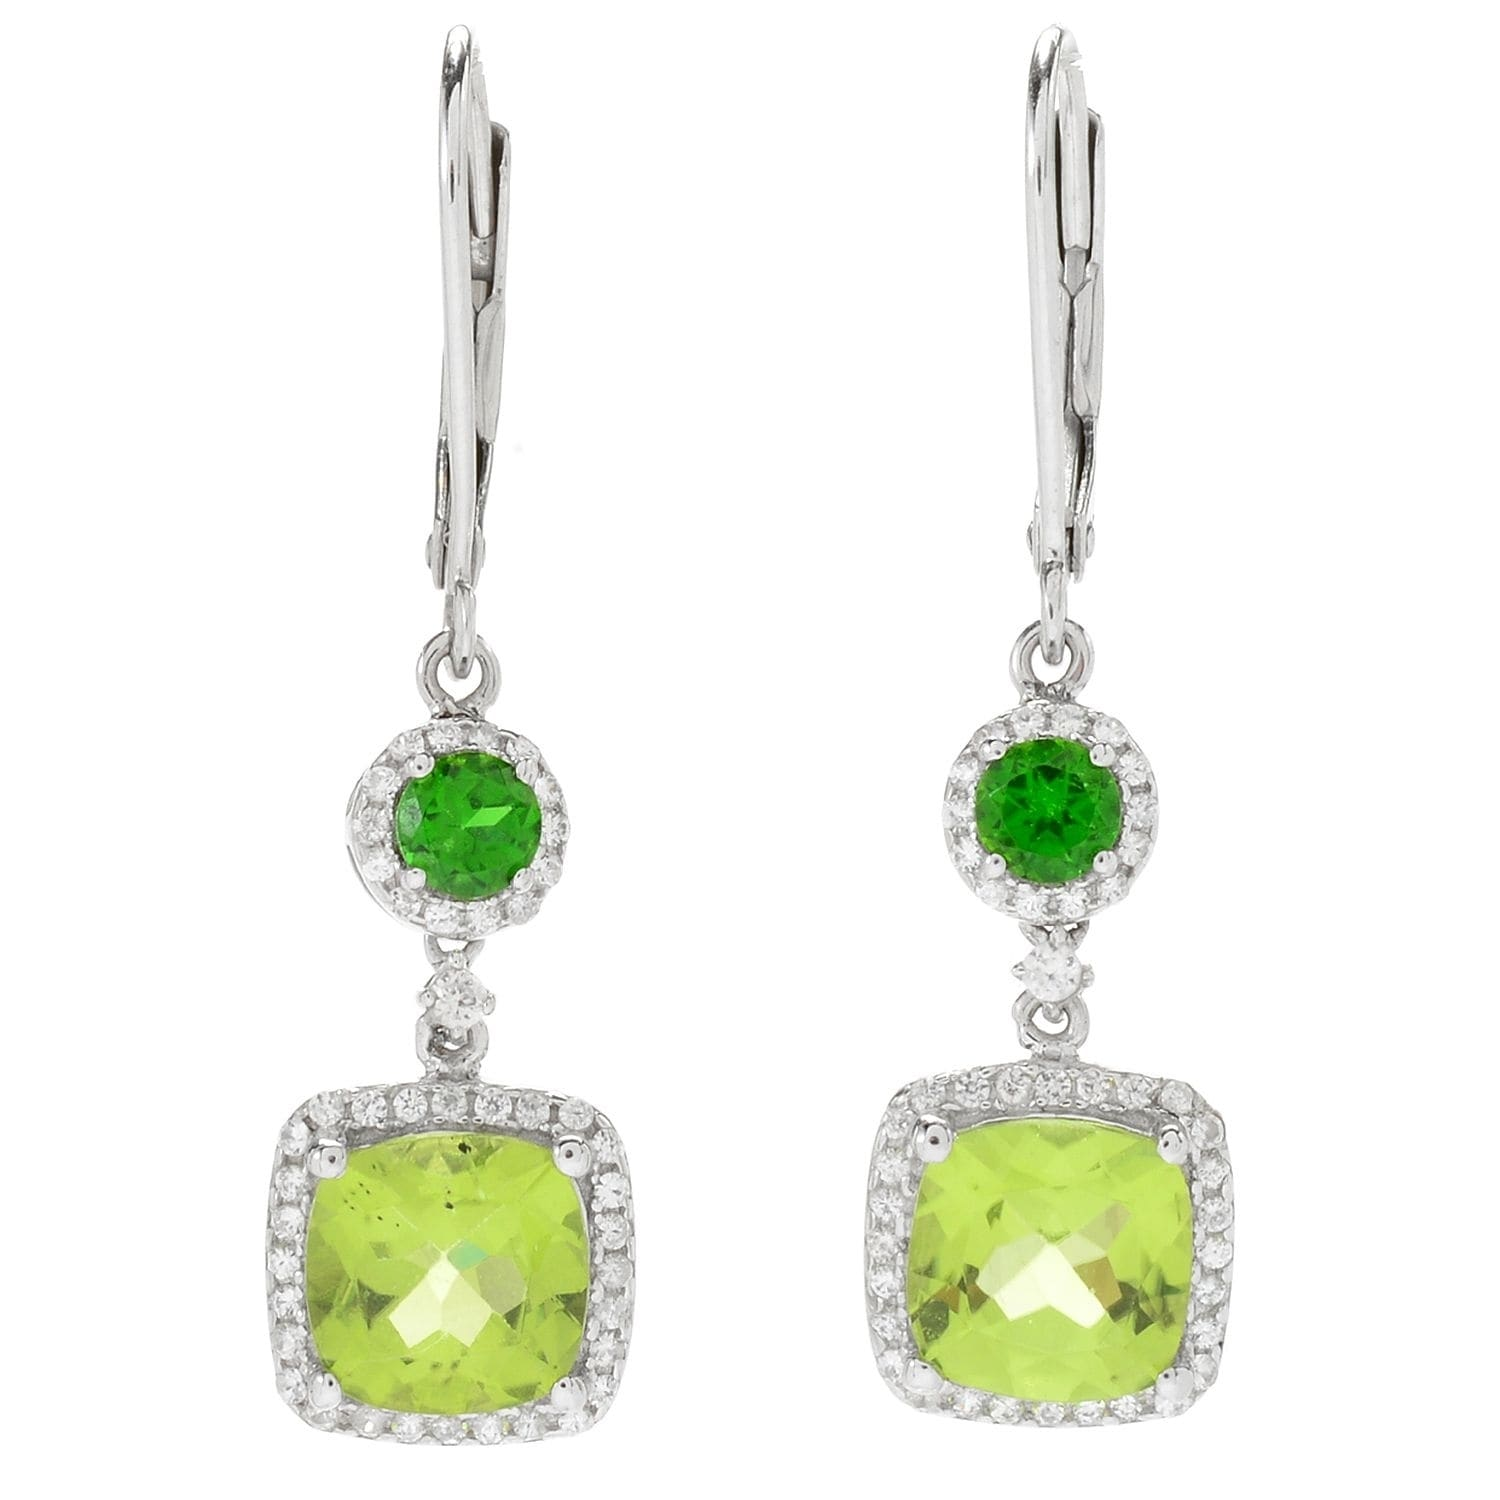 Square 4x4mm Green Peridot CZ Rose Gold Plated Sterling Silver Stud Earrings